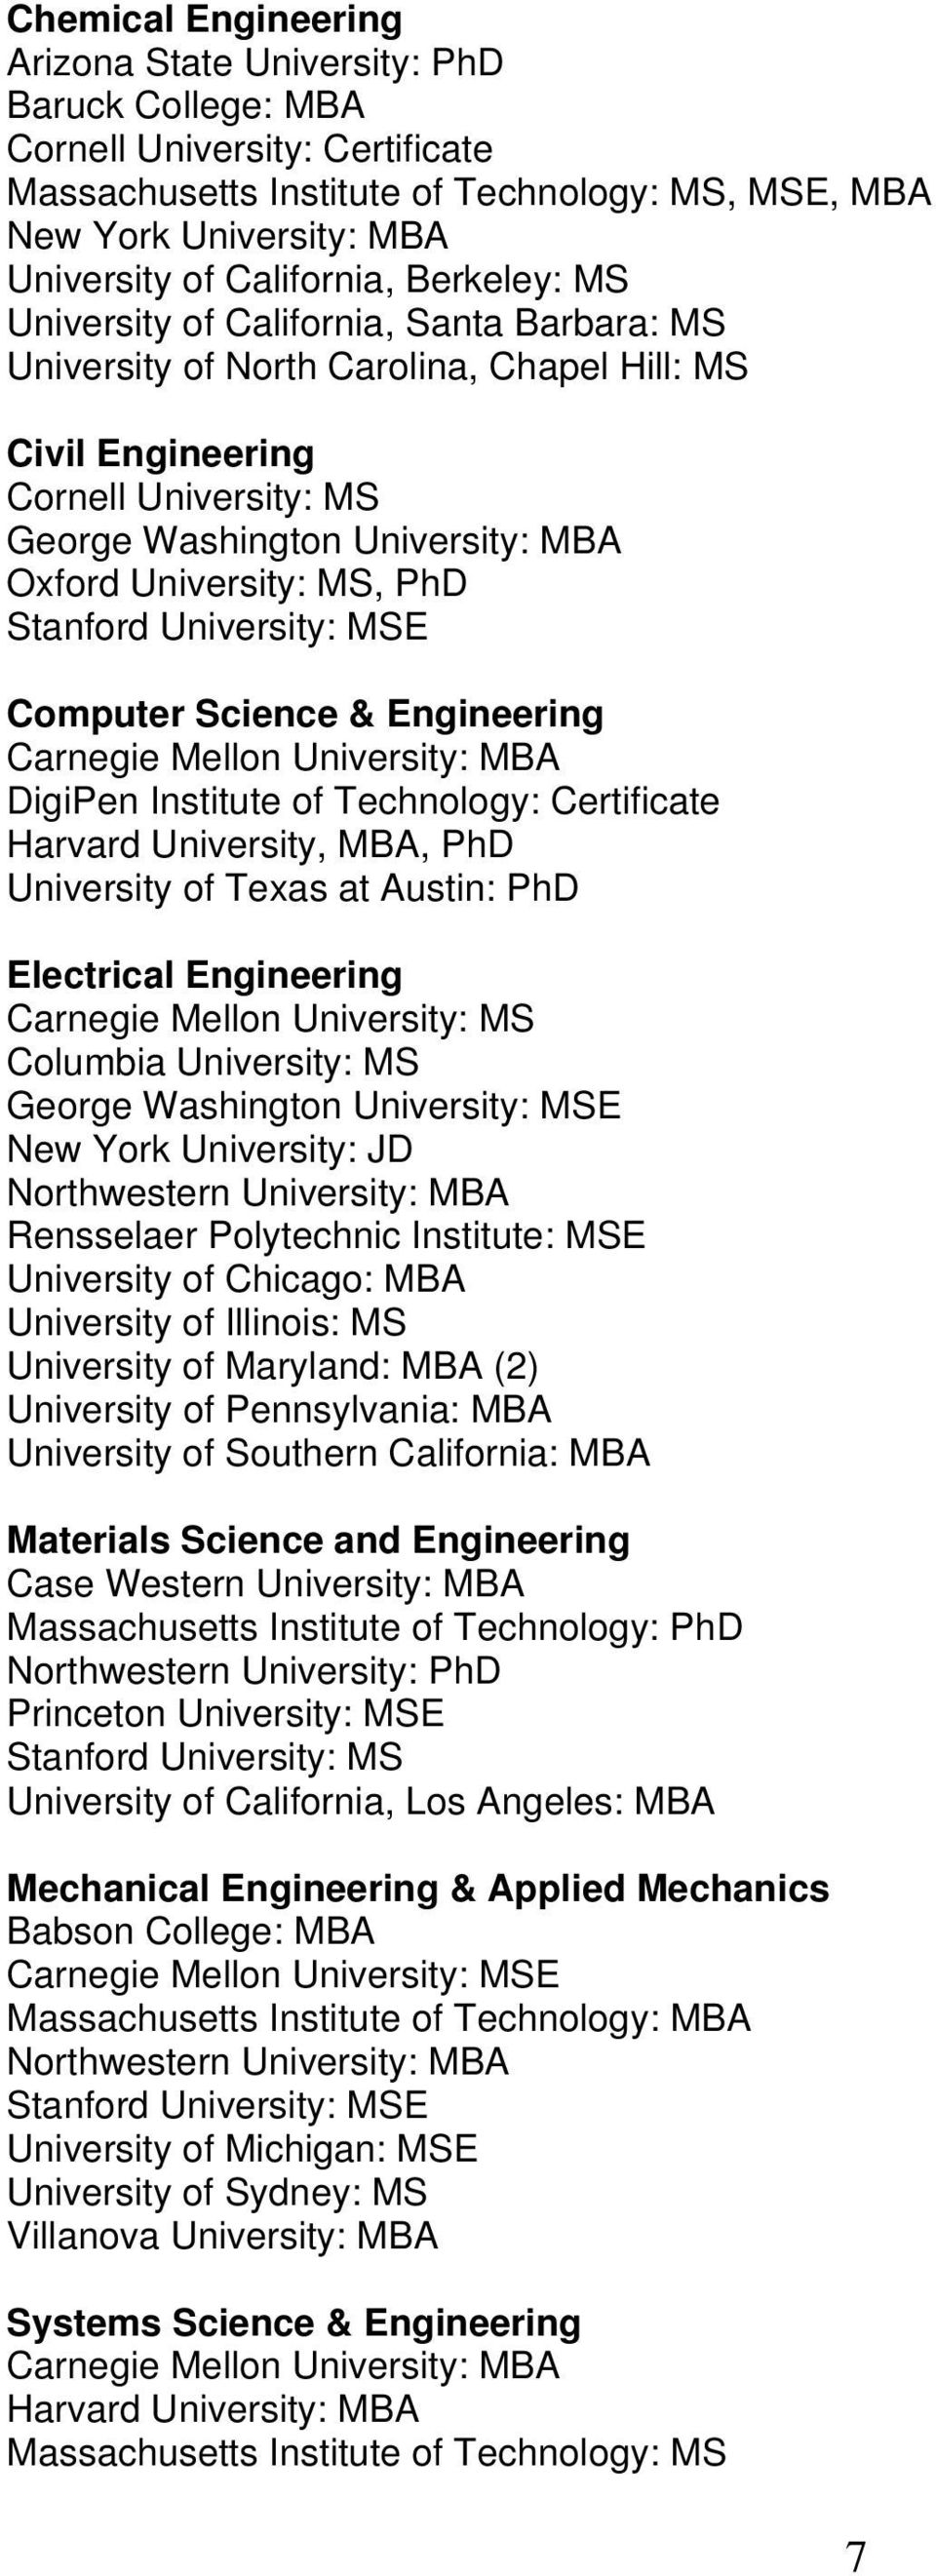 Stanford University: MSE Computer Science & Engineering Carnegie Mellon University: MBA DigiPen Institute of Technology: Certificate Harvard University, MBA, PhD University of Texas at Austin: PhD